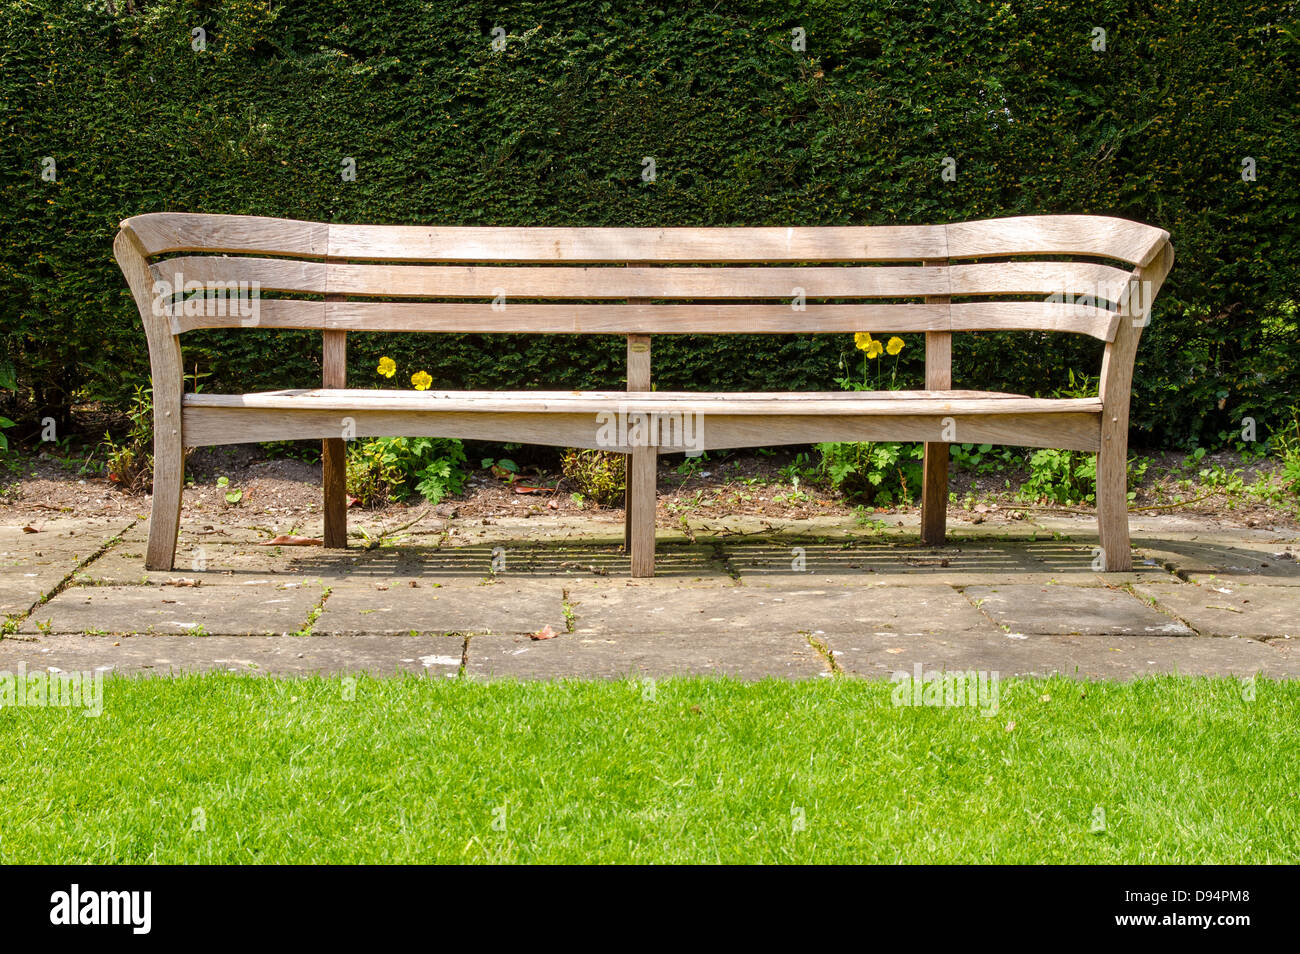 Empty wooden bench in English country garden Stock Photo